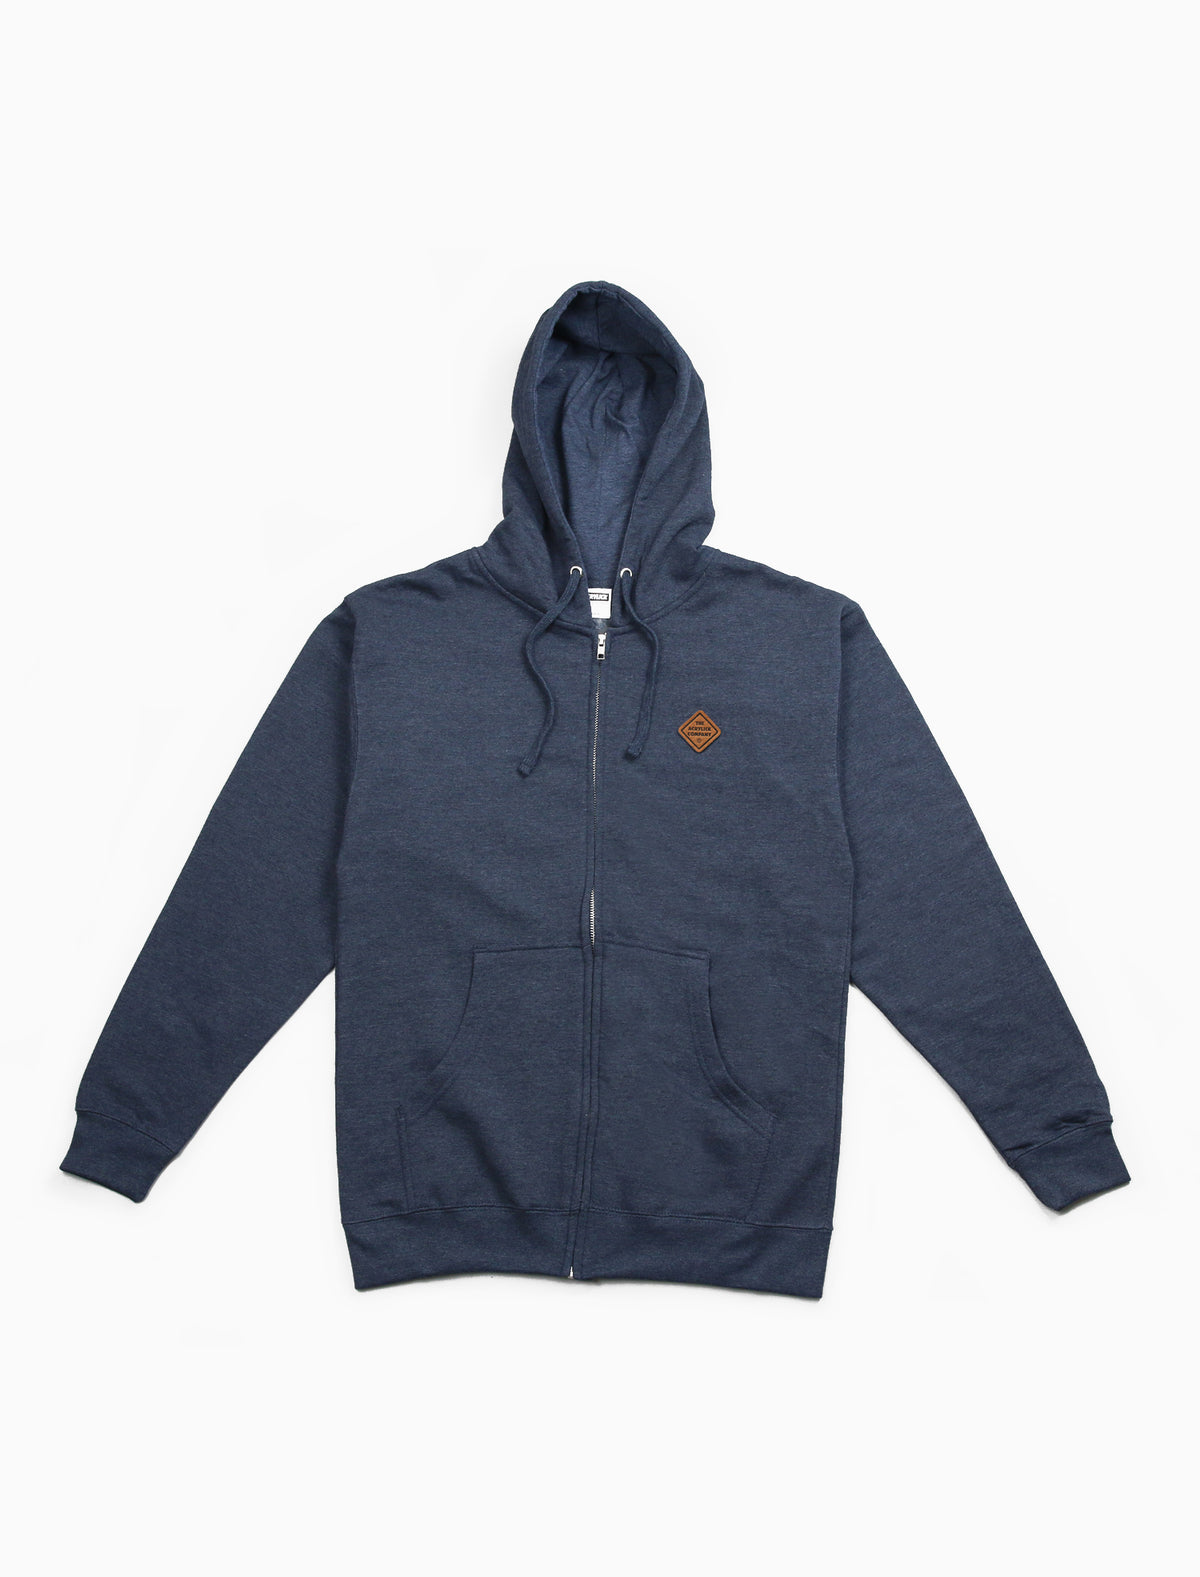 Midnighters Zipper Hoodie